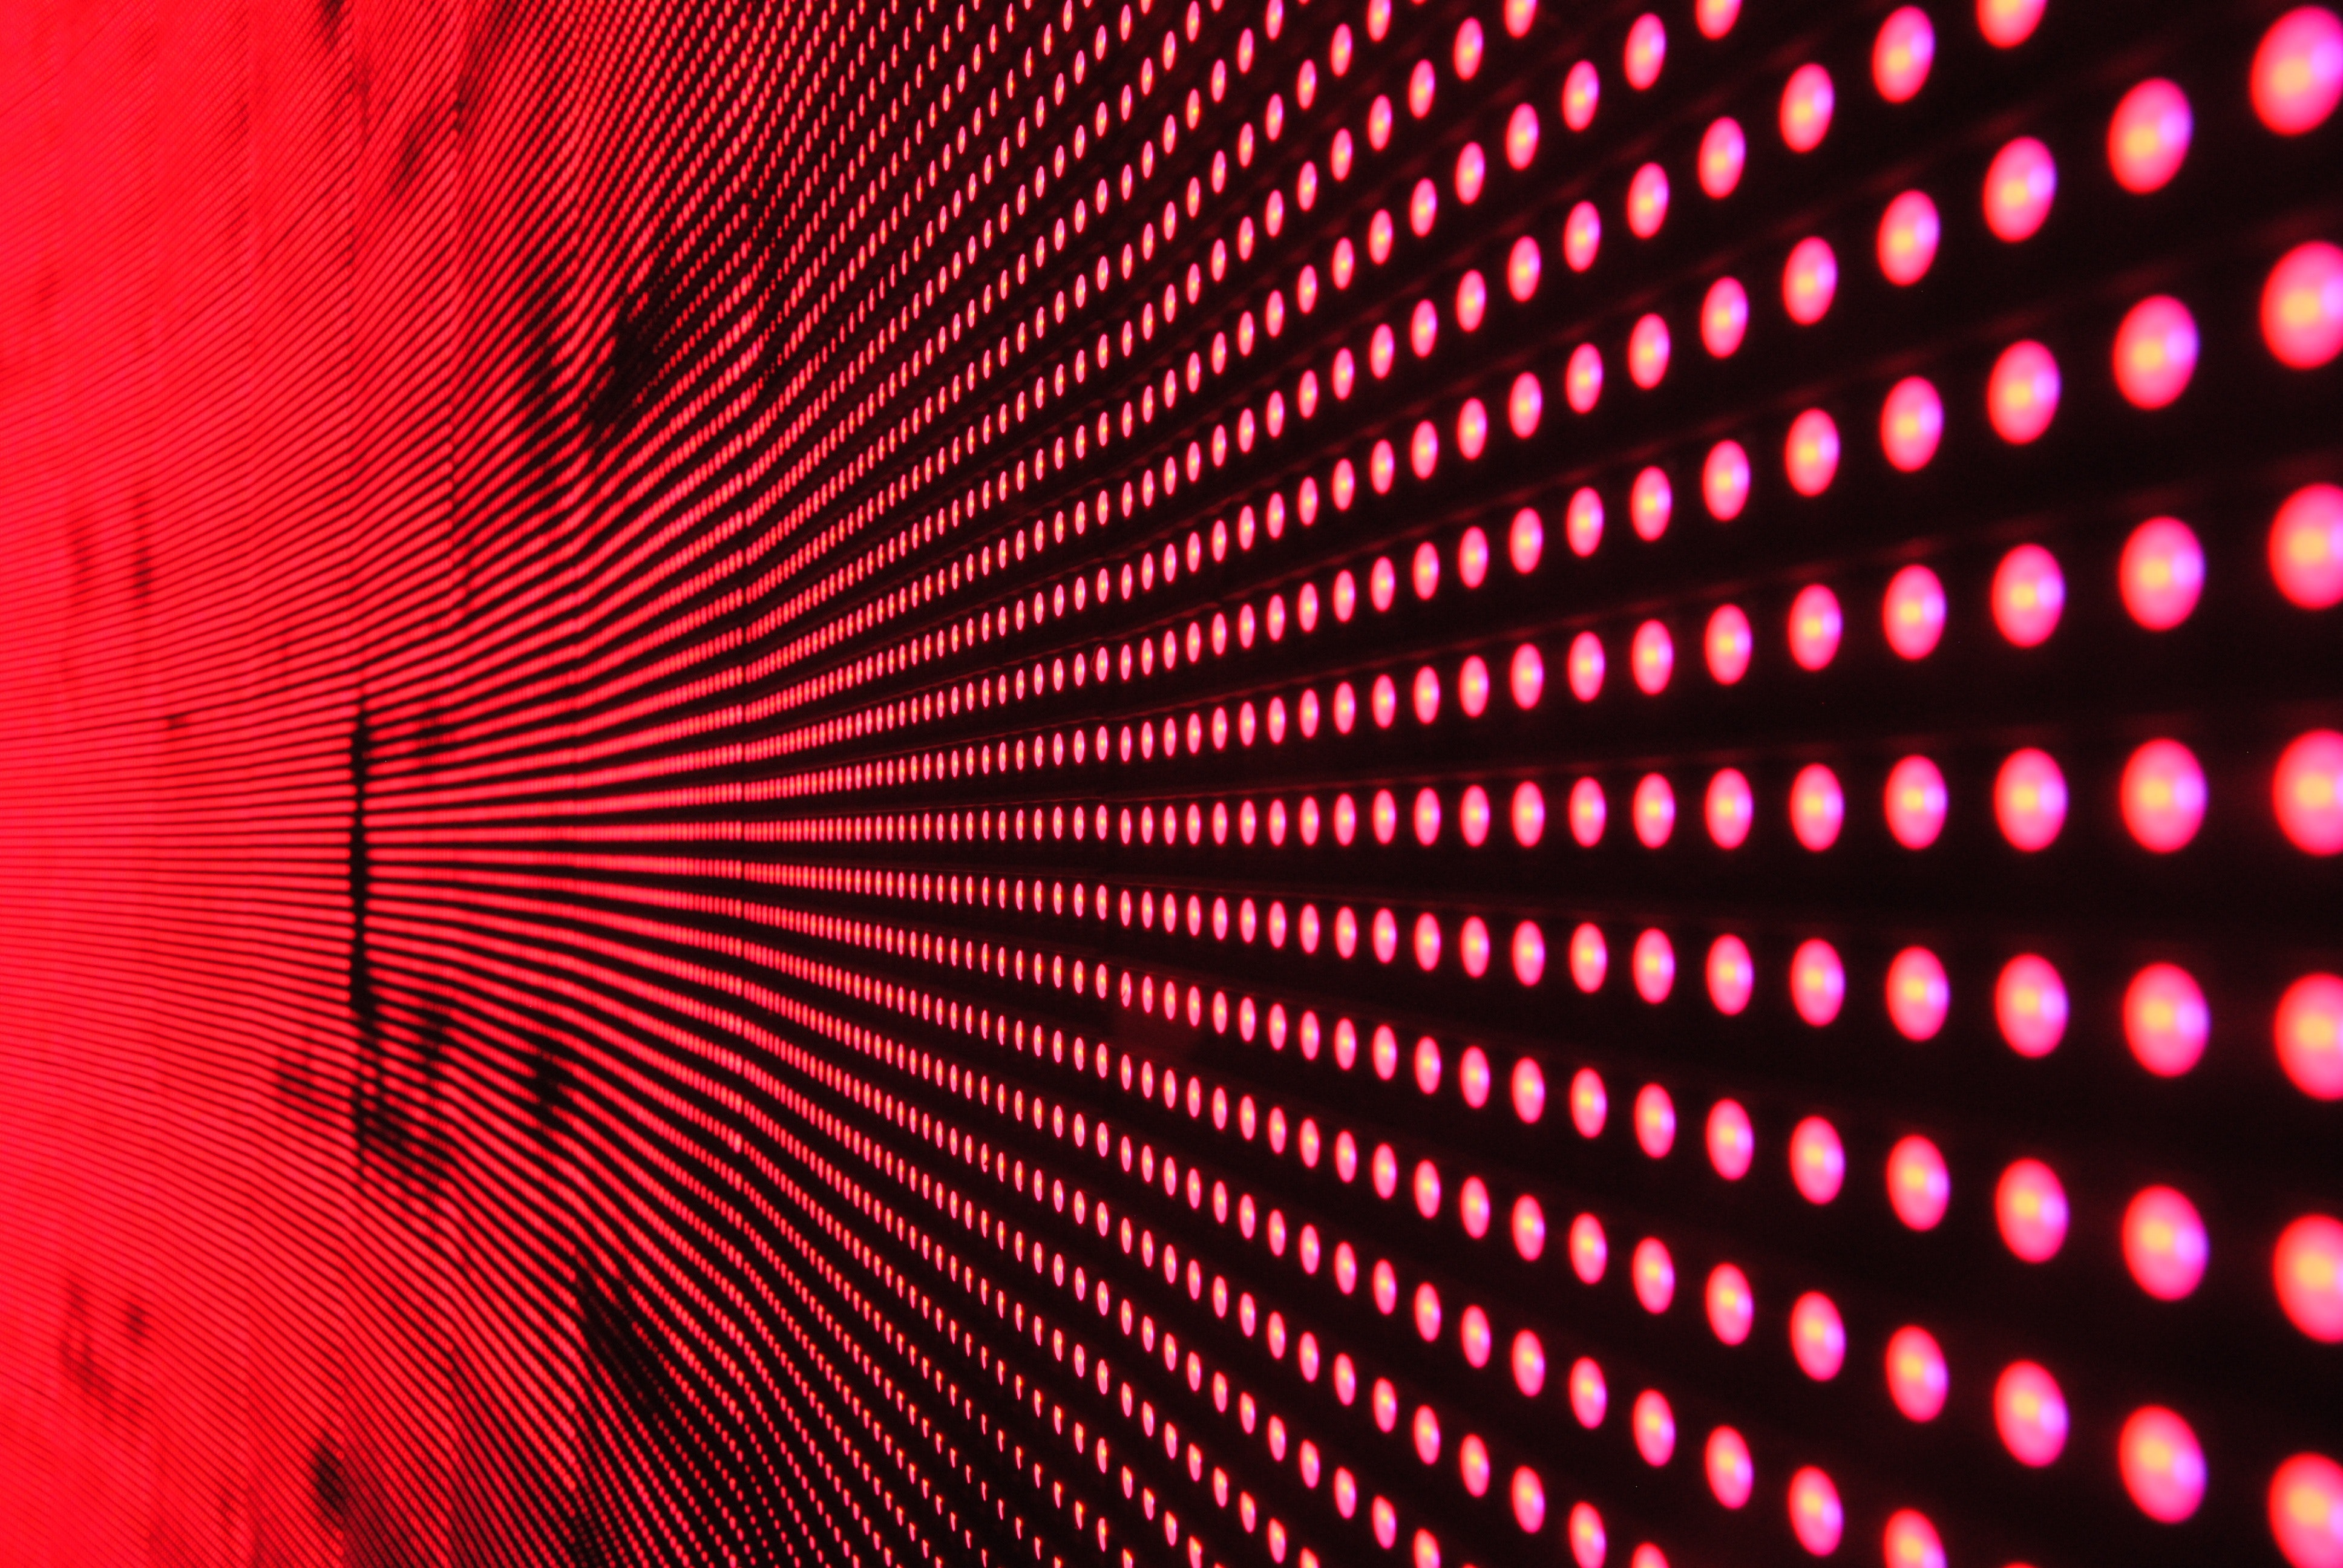 Red lights in line on black surface photo